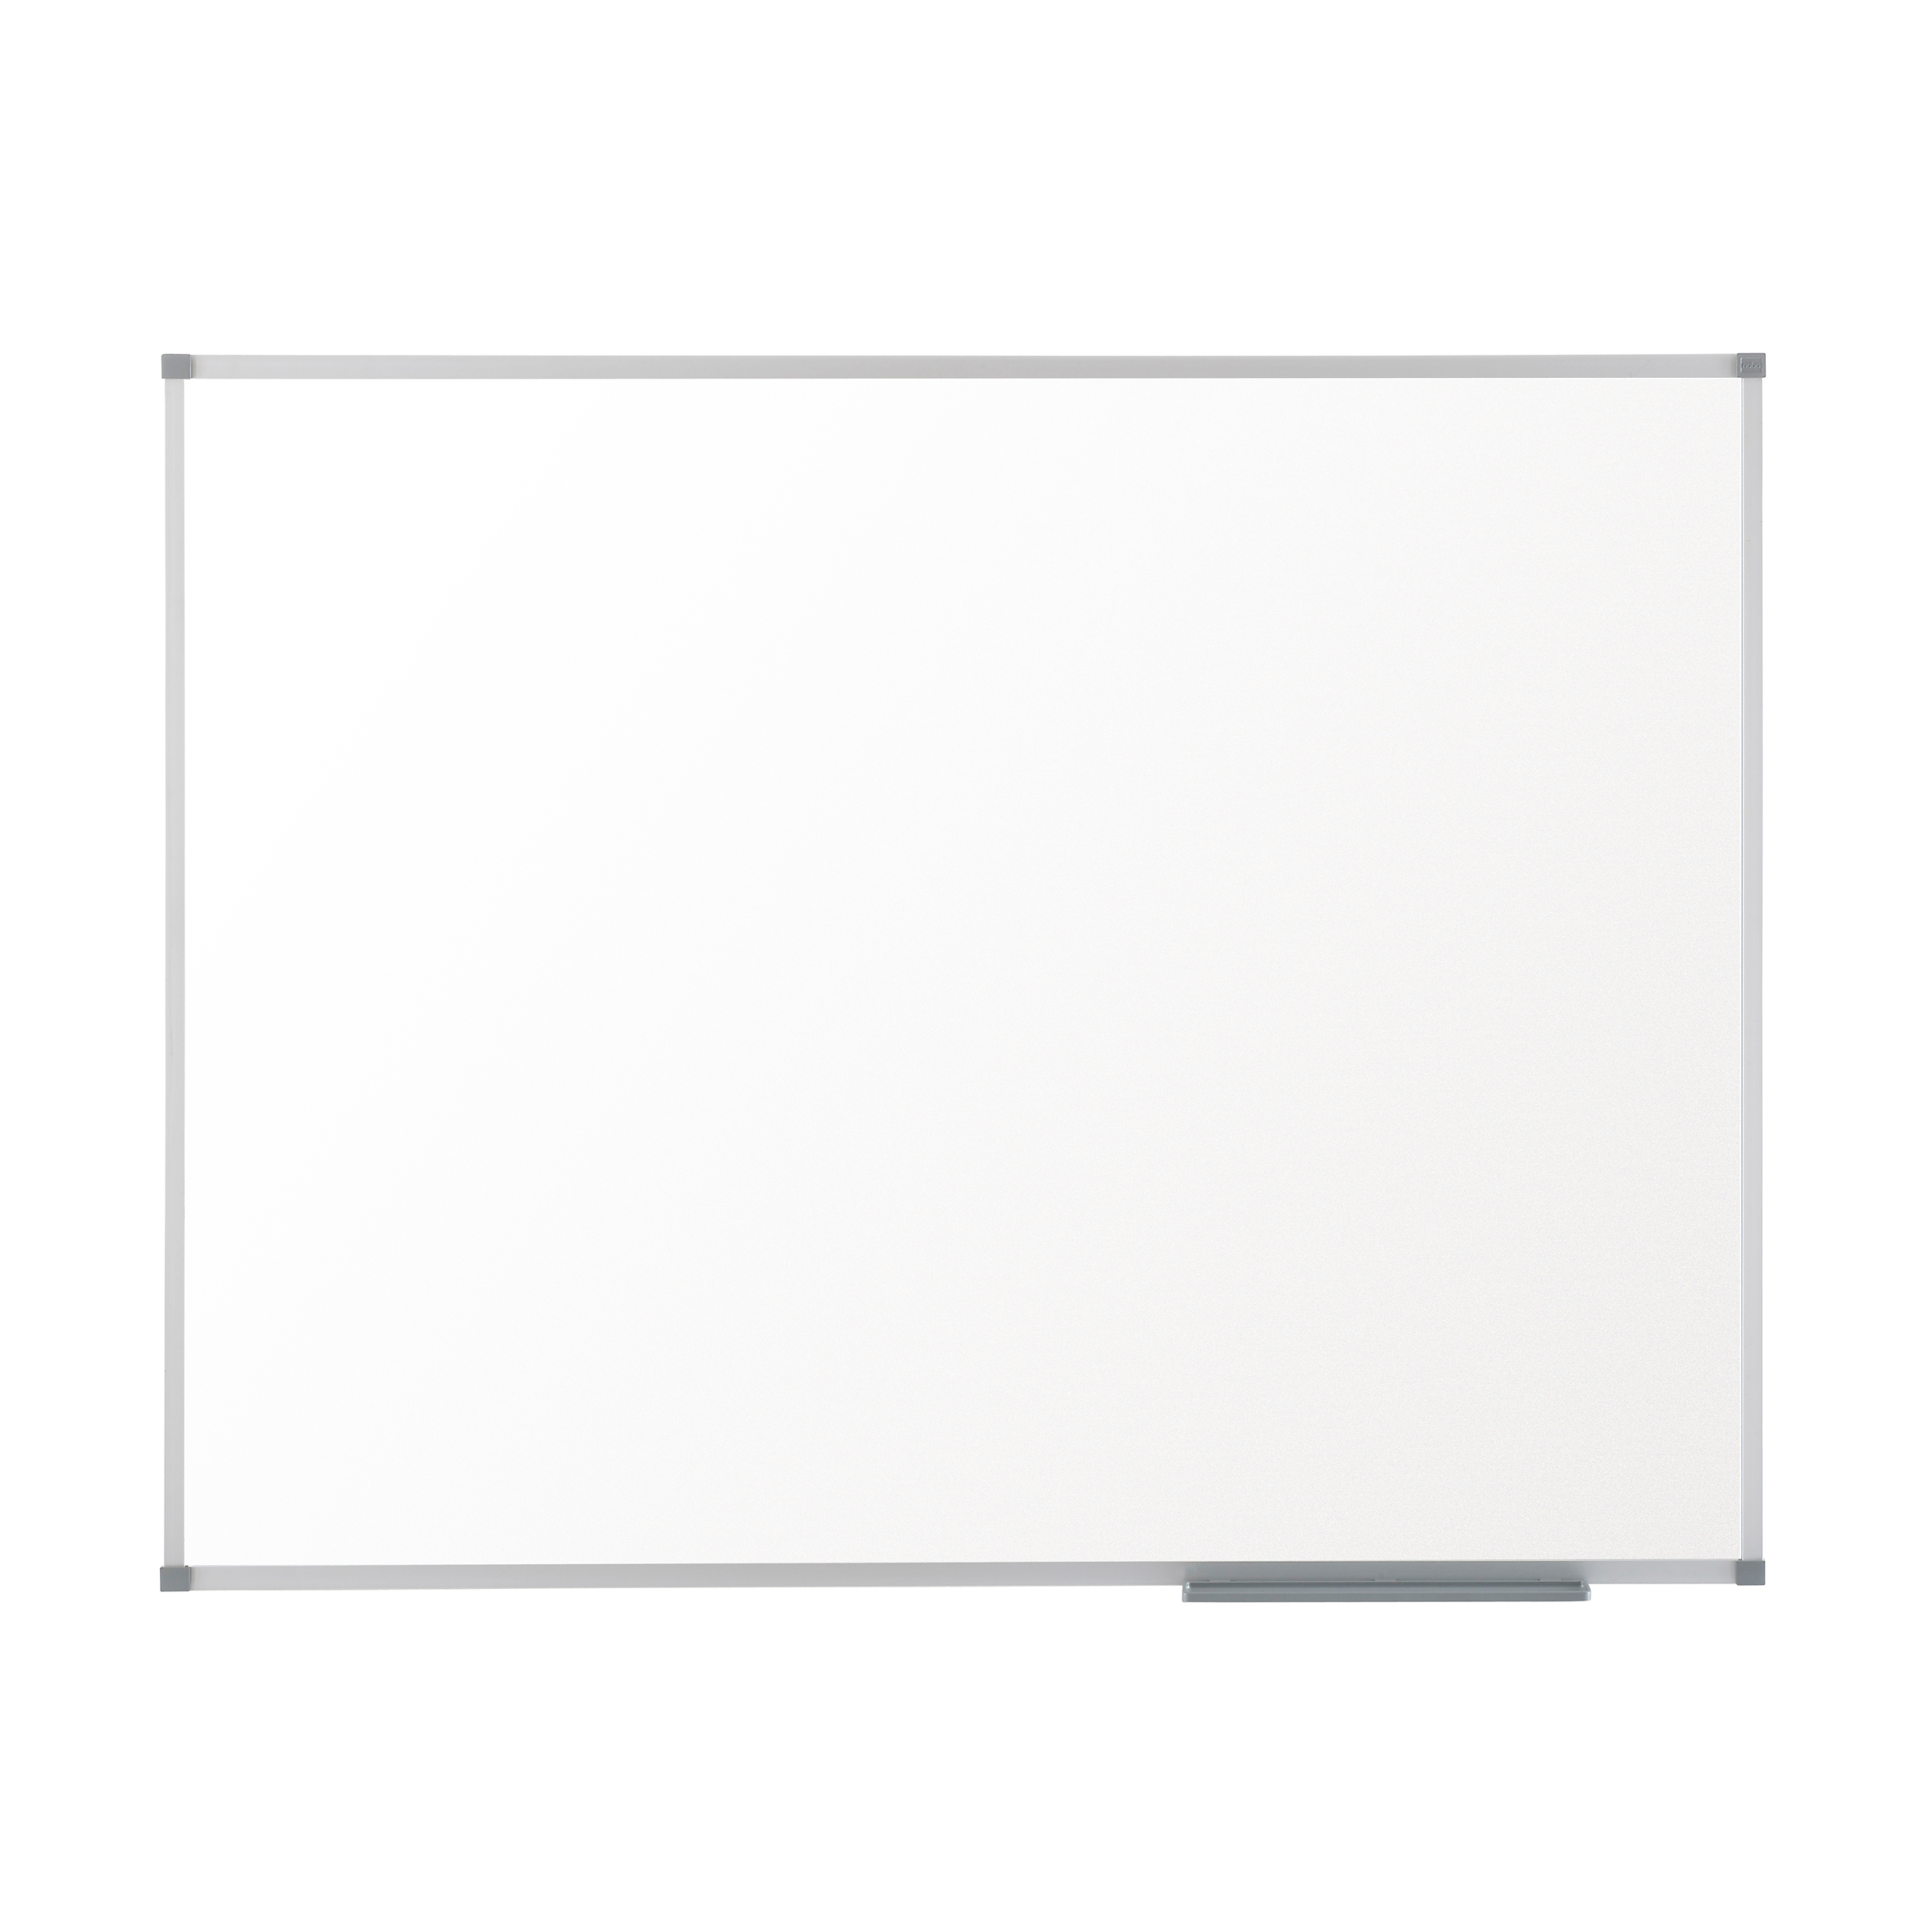 Magnetic Nobo Classic Enamel Eco Whiteboard Magnetic Fixings Included W1500xH1000mm White Ref 1905237